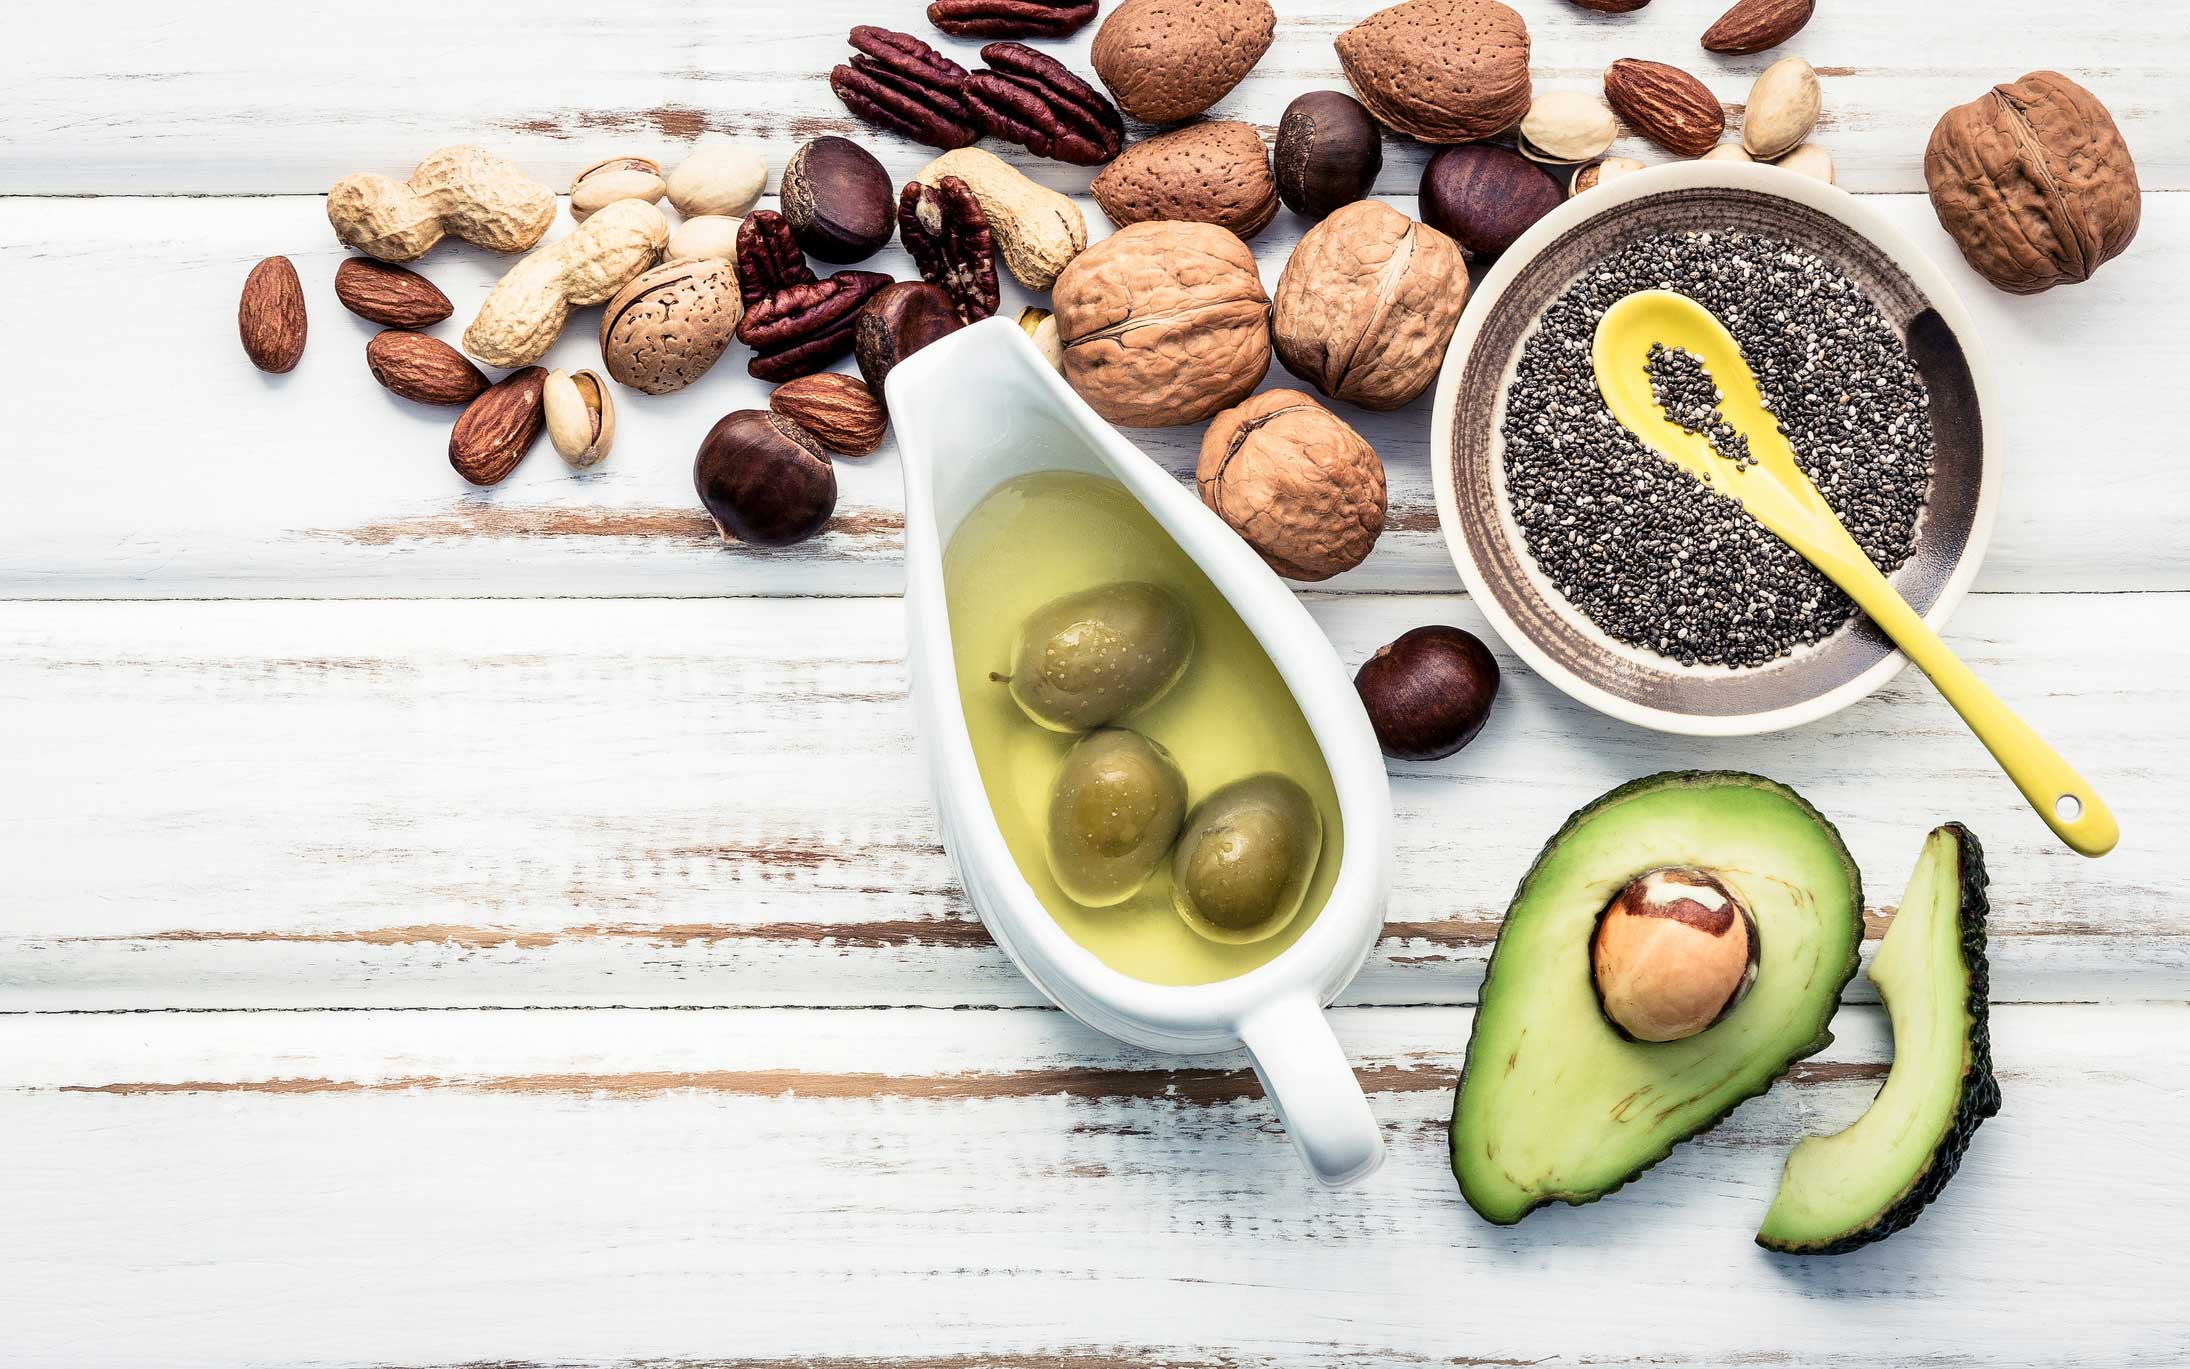 are there fats in a vegan diet?